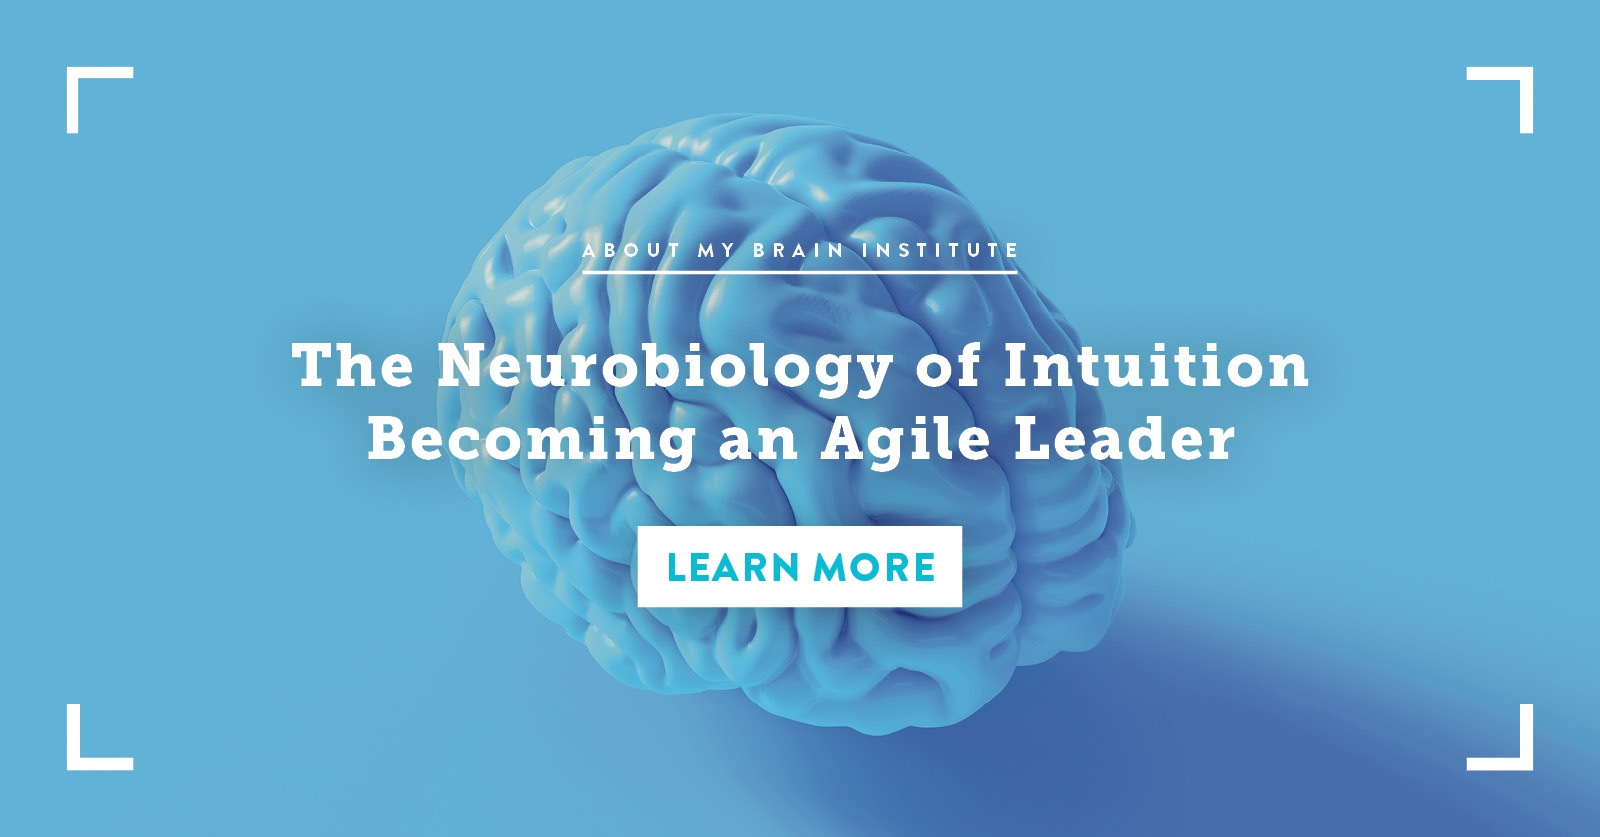 The Neurobiology of Intuition - Becoming an Agile Leader